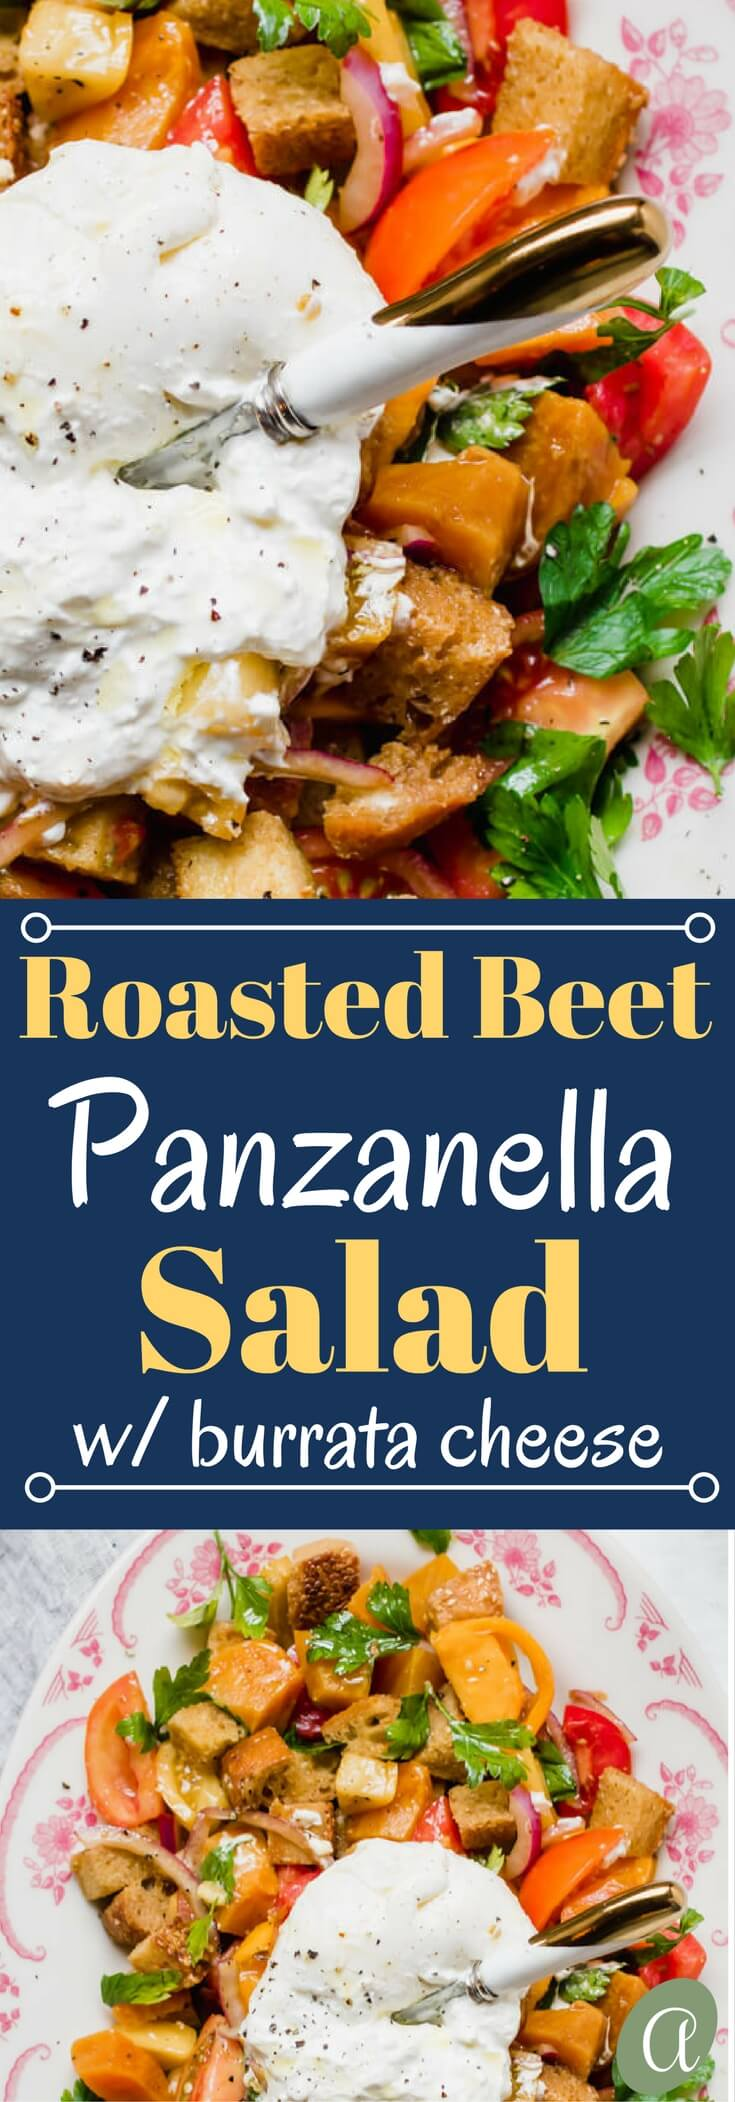 Roasted Beet Panzanella Salad - toasted bread with roasted beets, fresh tomato, parsley, and creamy burrata cheese all tossed together with a bright and tangy balsamic vinaigrette. An easy to prepare nourishing and insanely delicious salad.